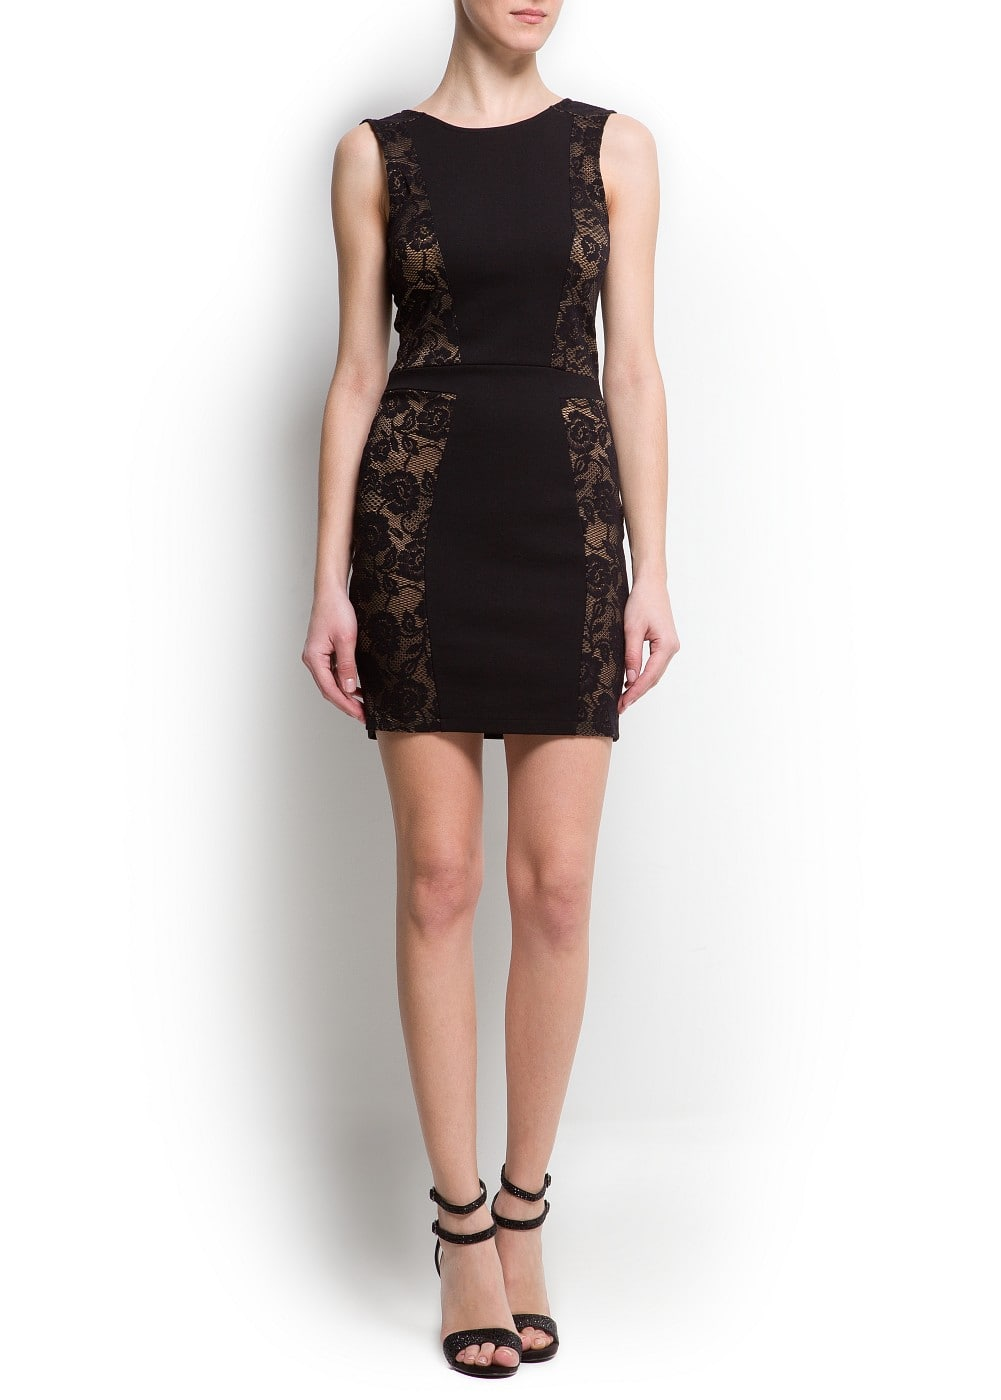 Lace panels dress